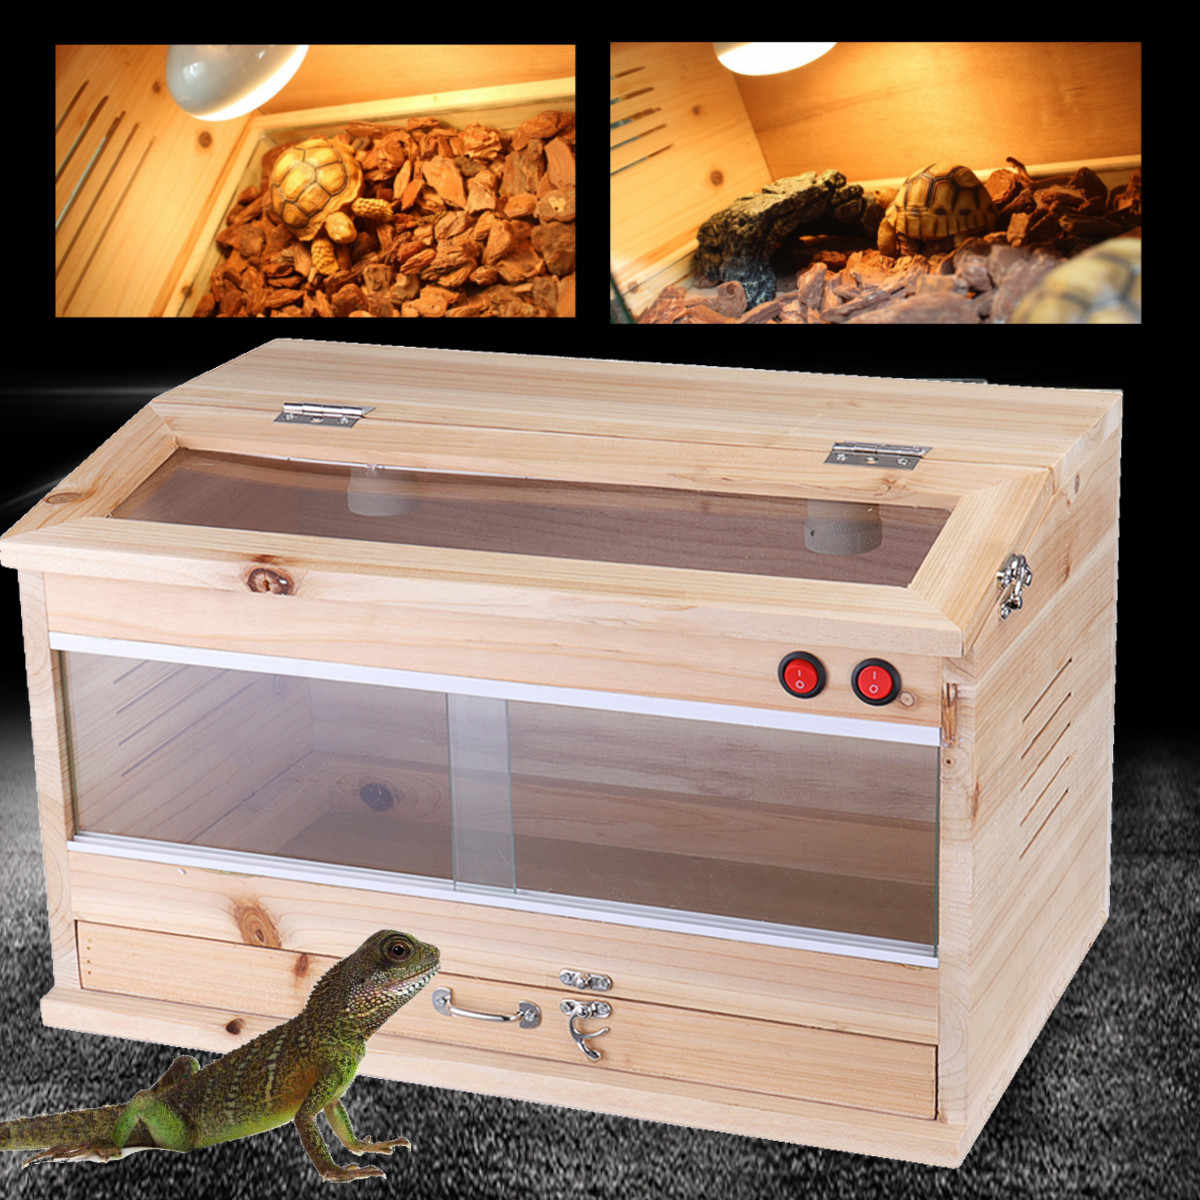 Large Wooden Reptiles Terrariums Enclosure Heating Cage Lizard Frogs Snake Turtle Tank With Lock Breeding Box Supplies